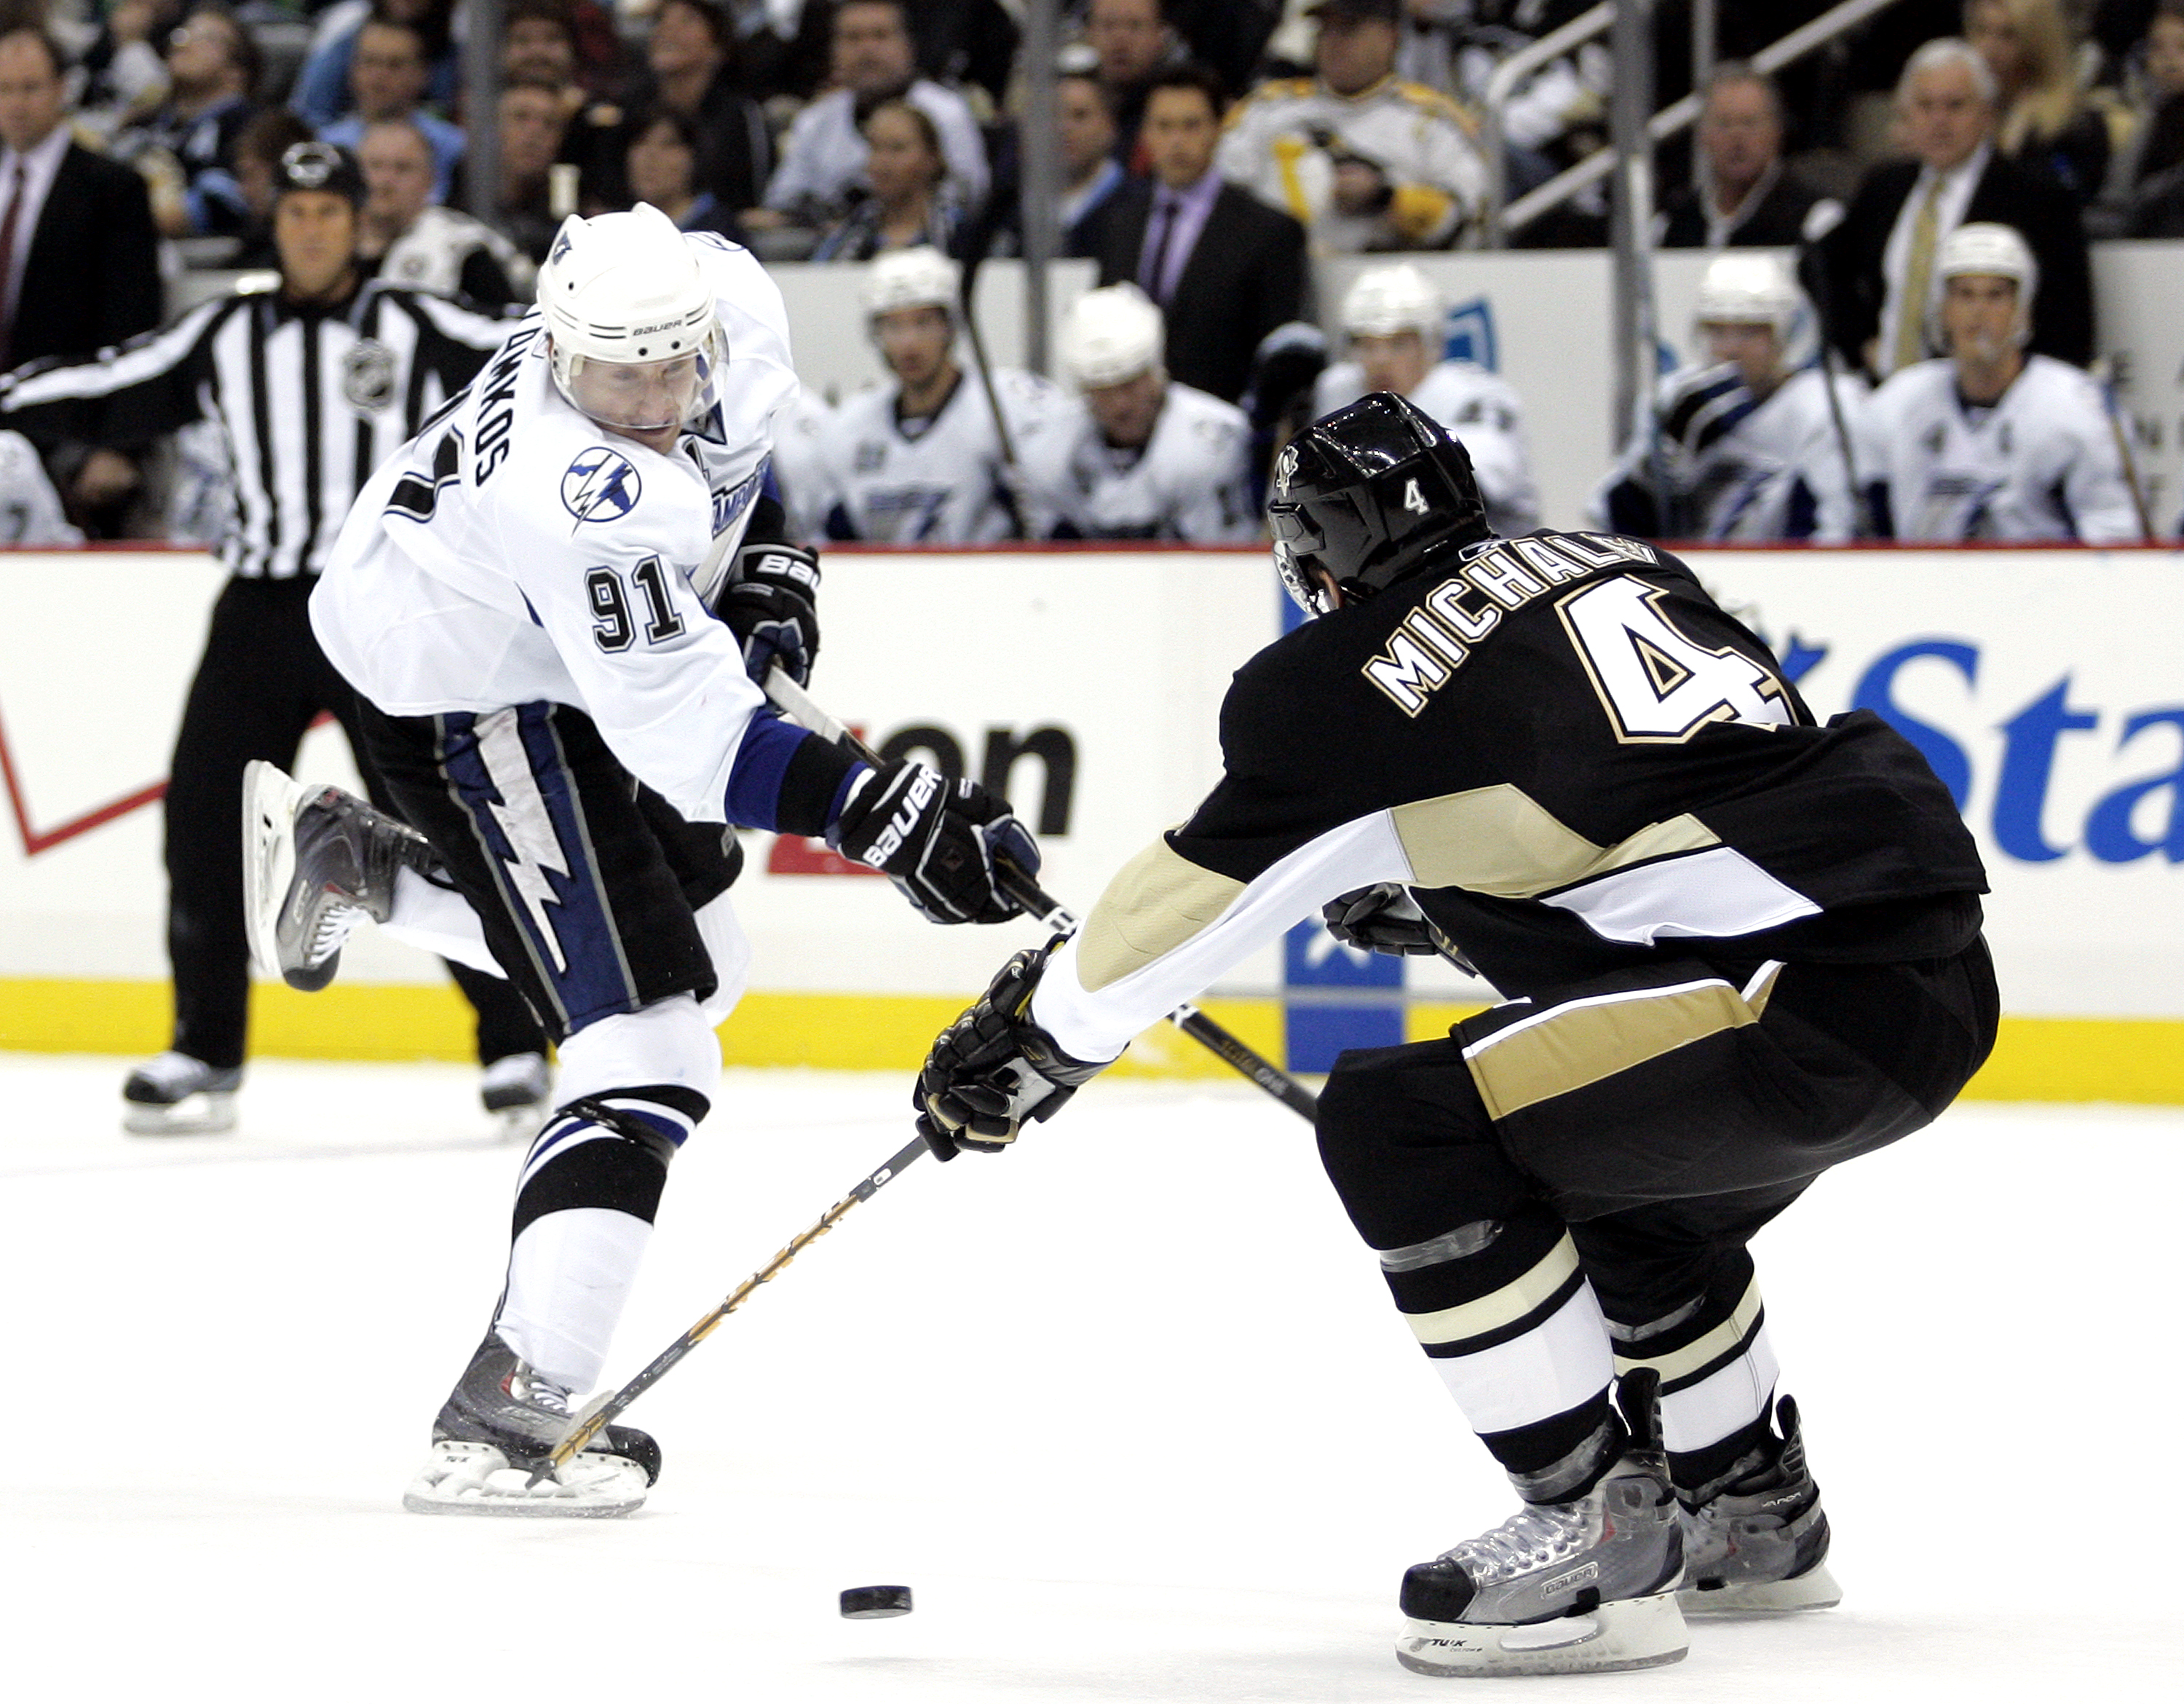 PITTSBURGH, PA - JANUARY 05:  Steven Stamkos #91 of the Tampa Bay Lightning takes a shot against the Pittsburgh Penguins on January 5, 2011 at Consol Energy Center in Pittsburgh, Pennsylvania.  (Photo by Justin K. Aller/Getty Images)